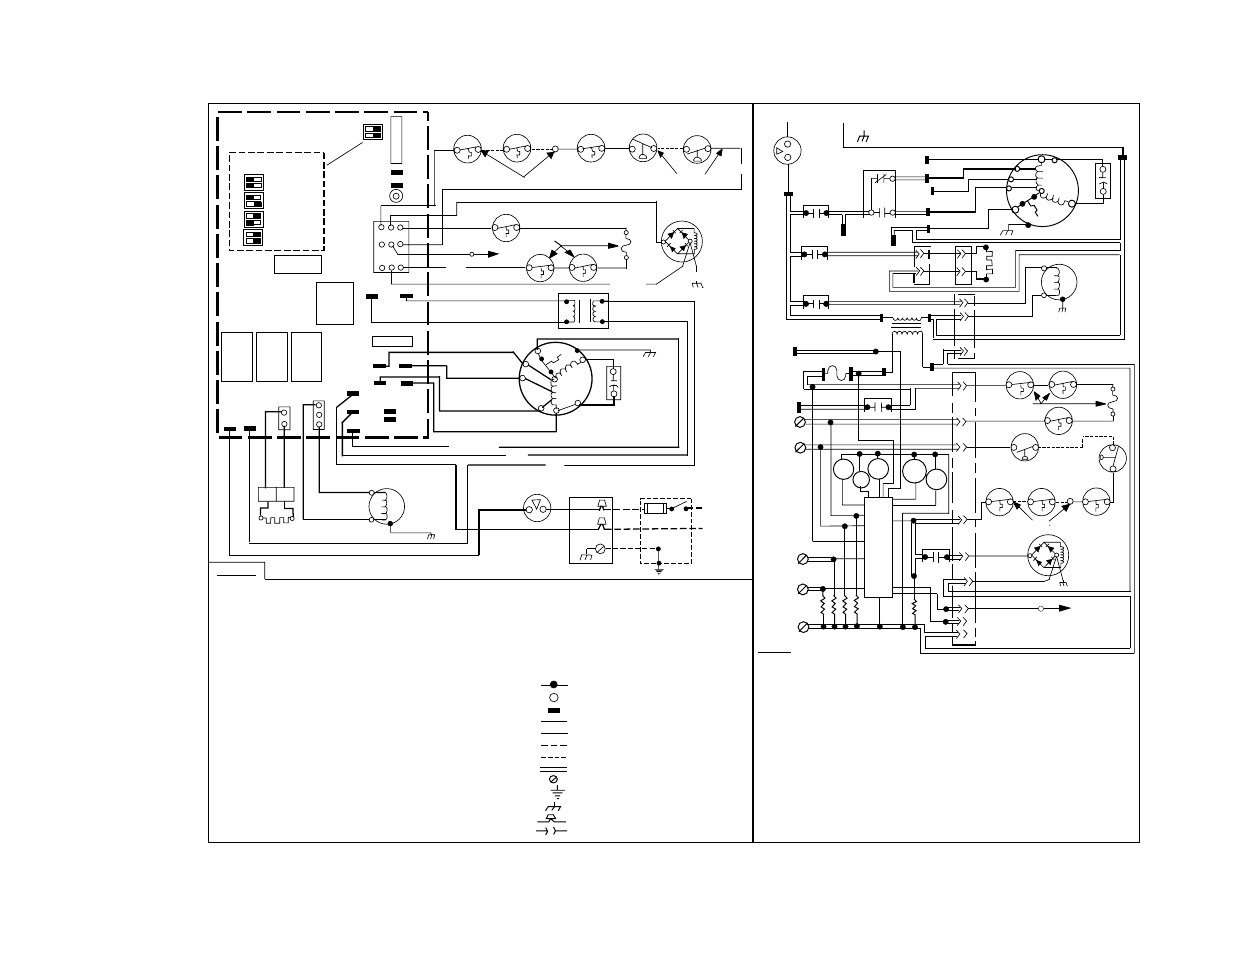 Honeywell Humidifier Wiring Schematic Trusted Diagrams Diagram Bryant Owners Manual